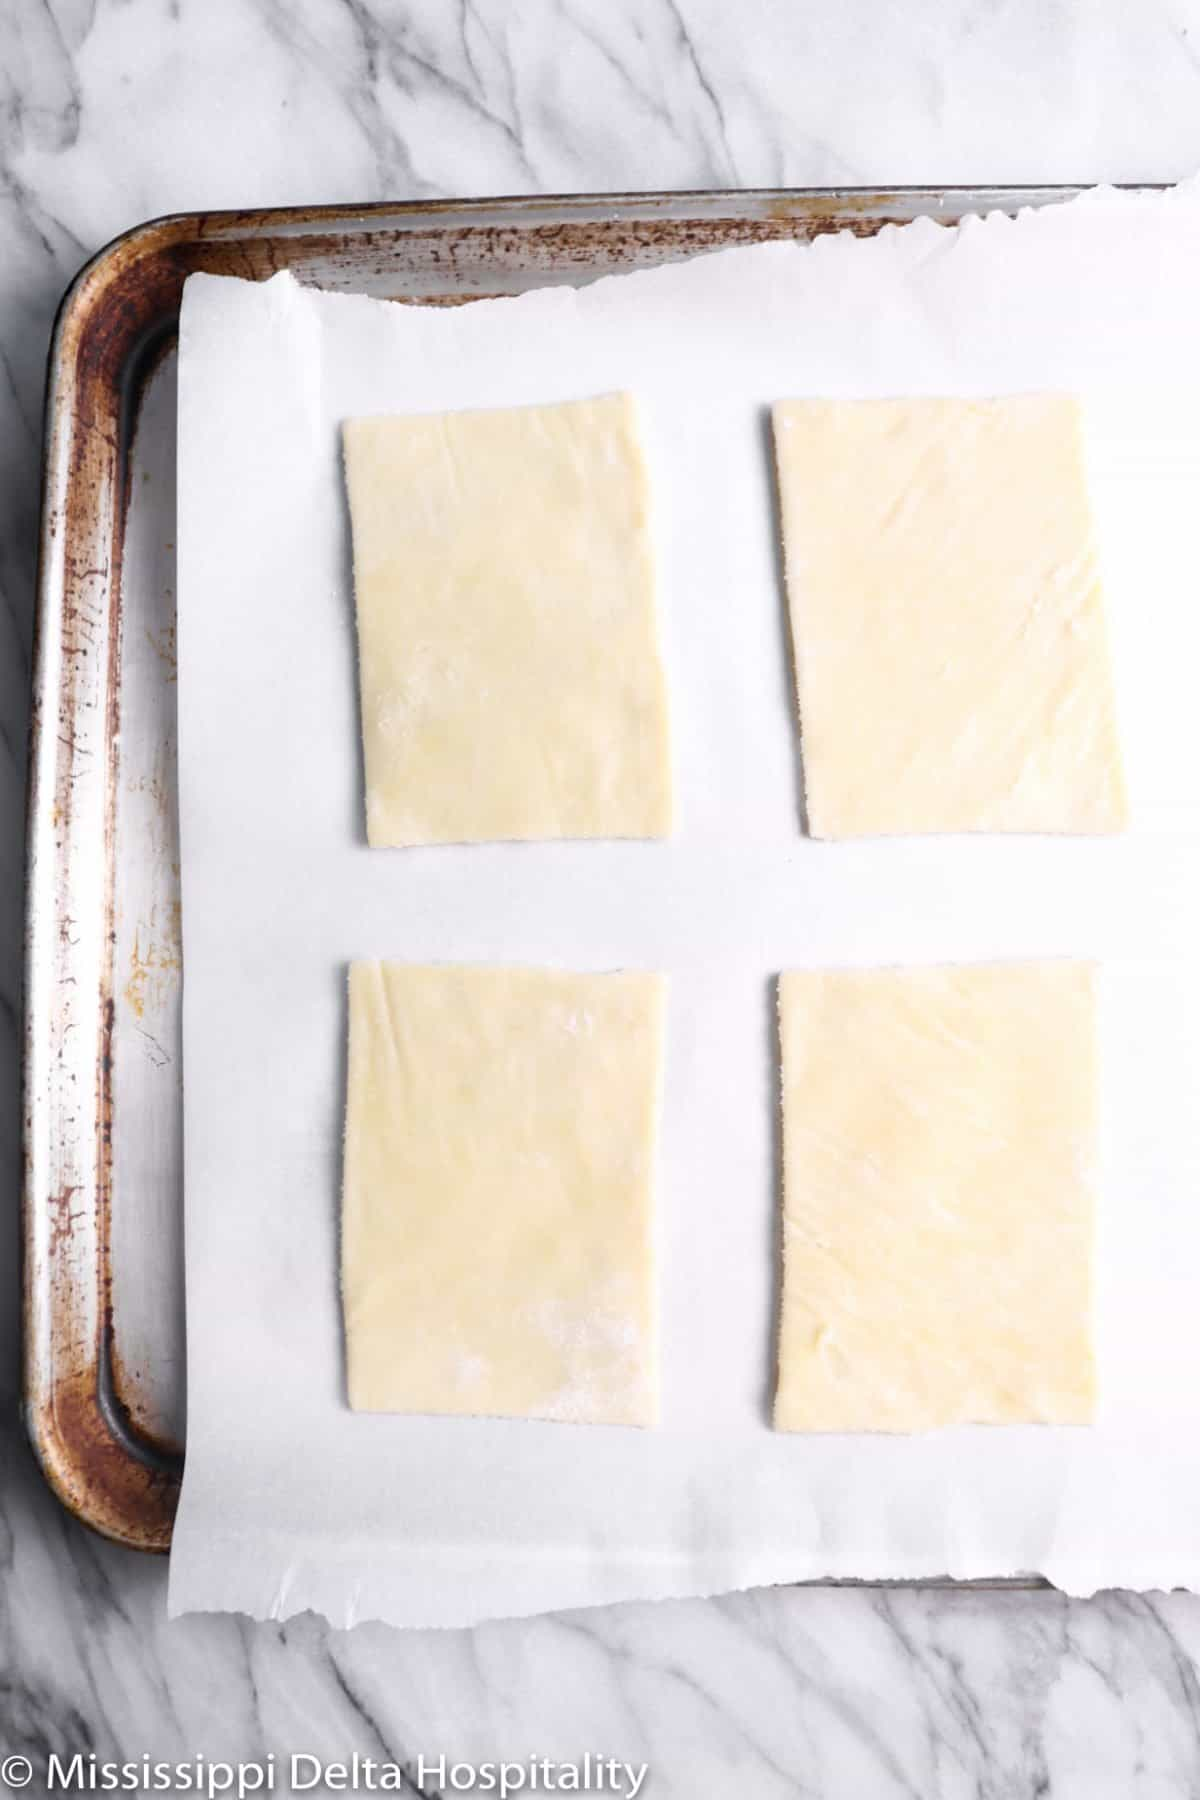 four pieces of pie crust cut into rectangles on a pan